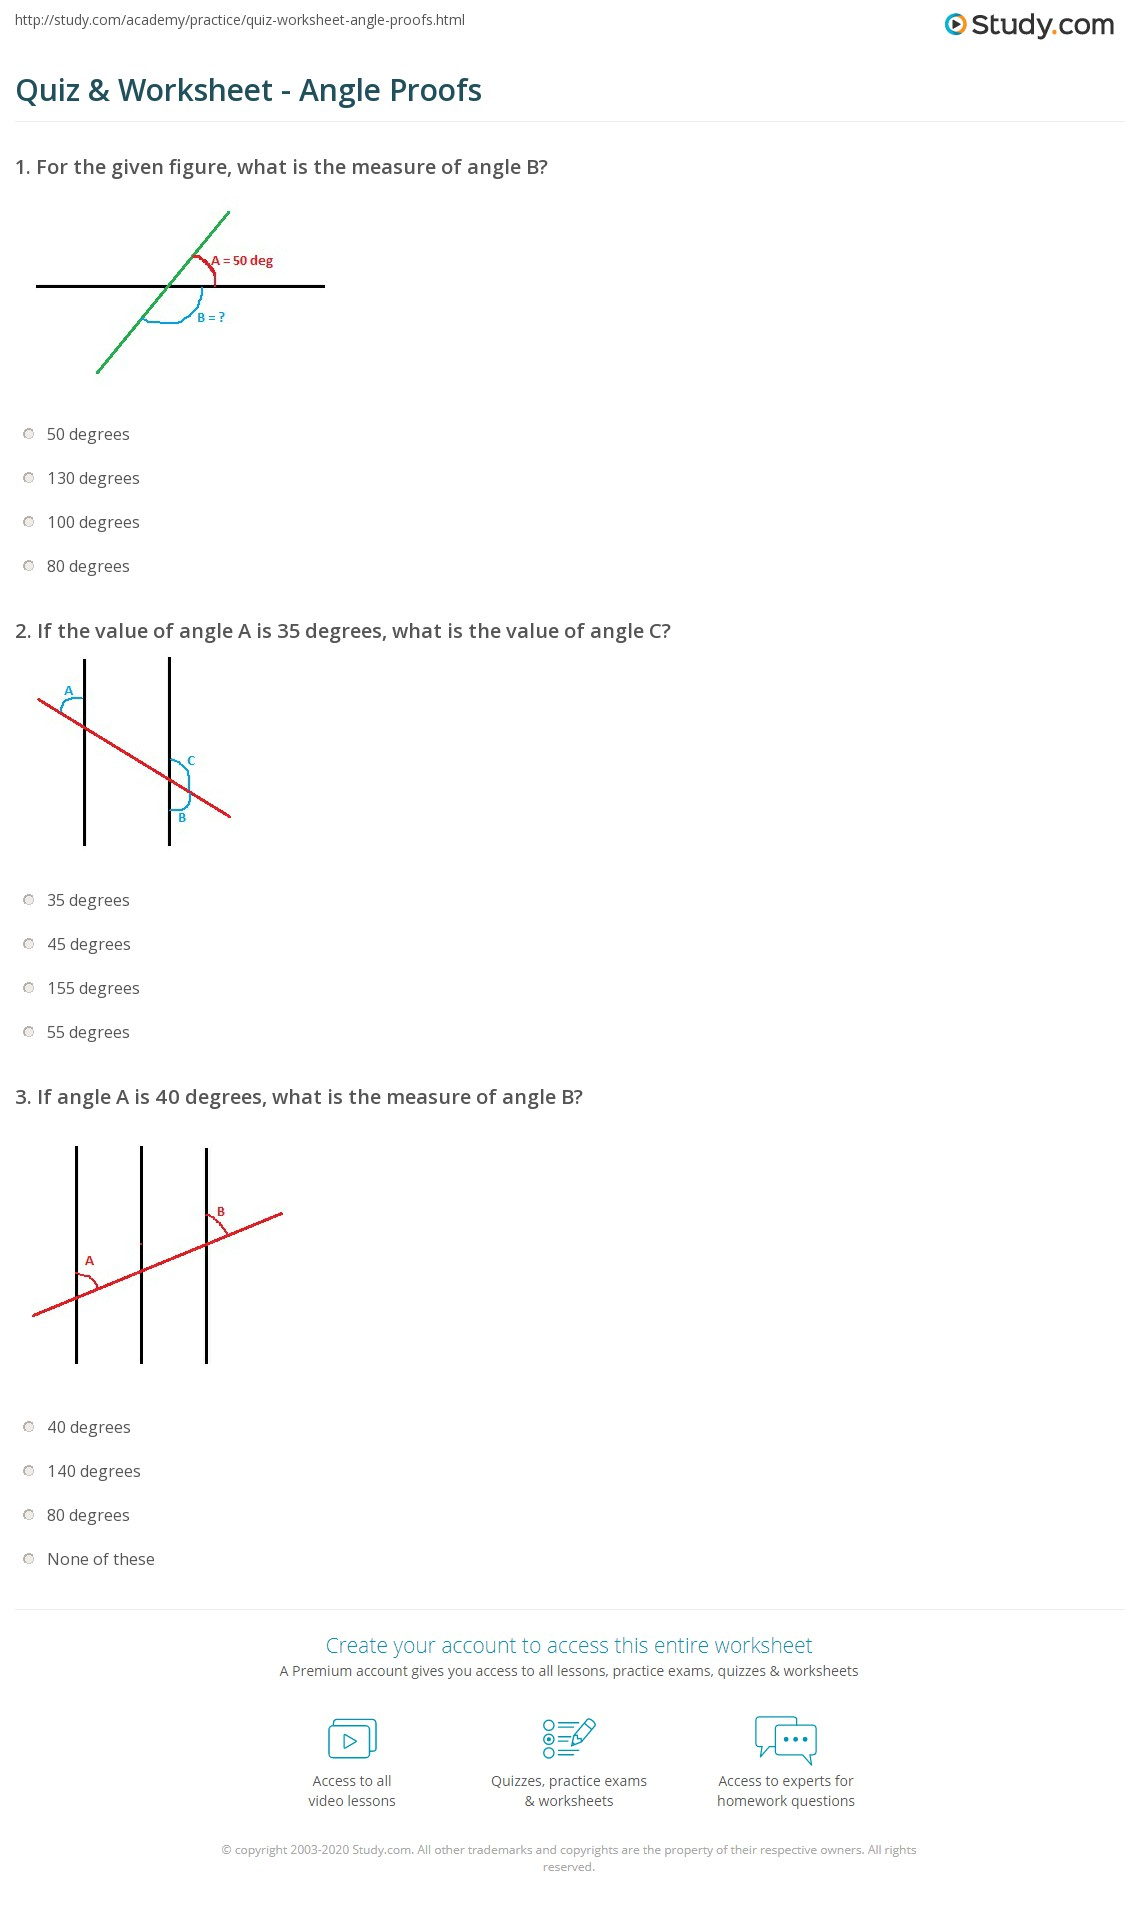 28 Angle Proofs Worksheet With Answers